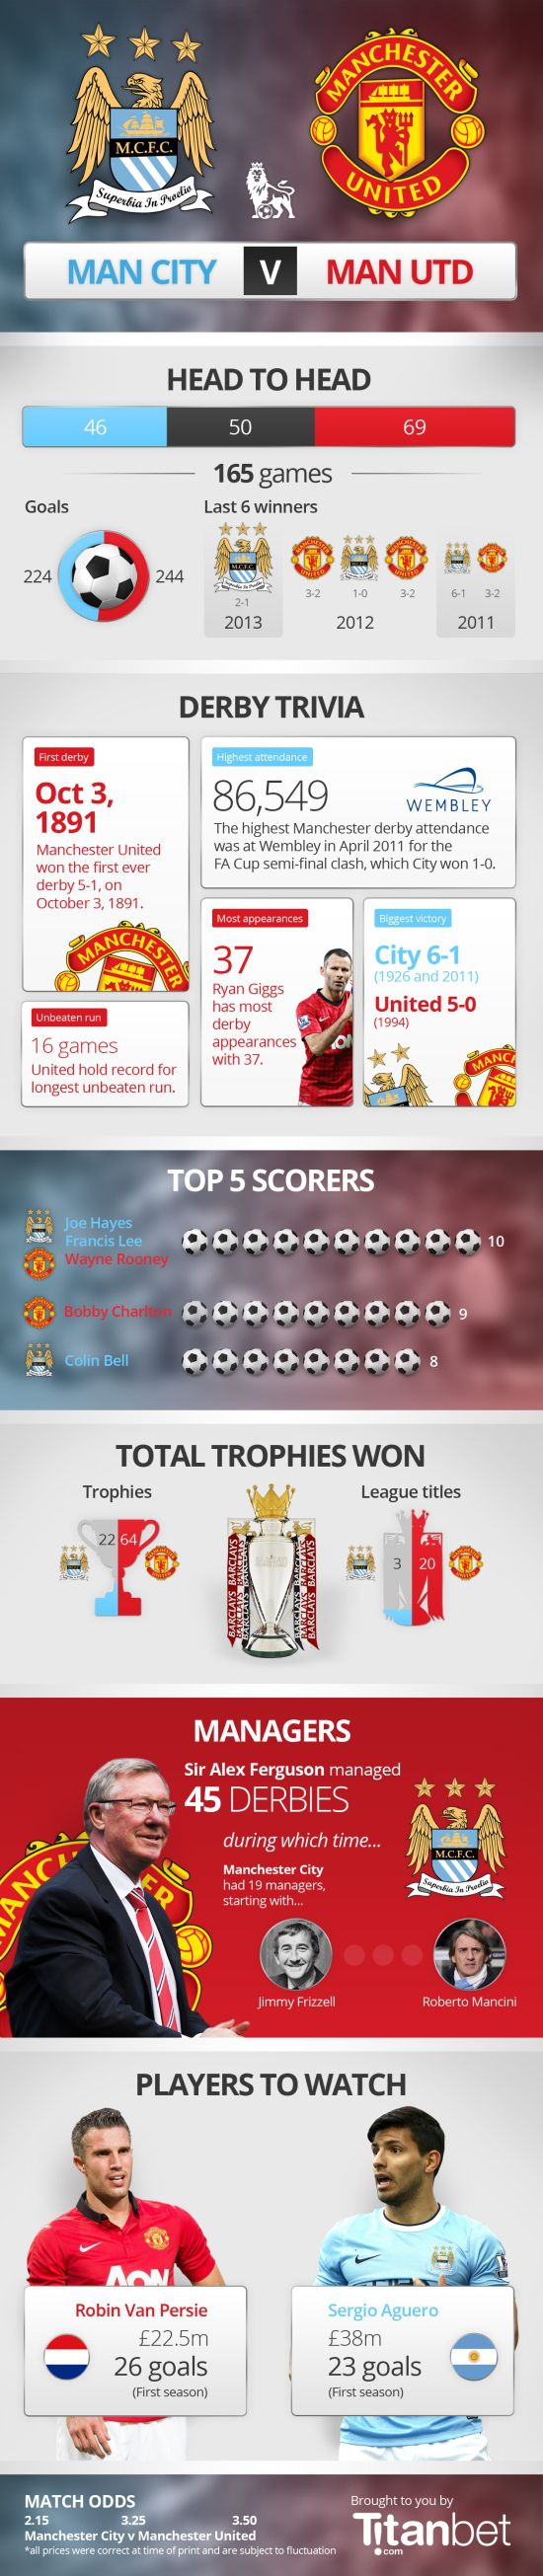 Manchester City VS Manchester United [INFOGRAPHIC] #mancity #manutd